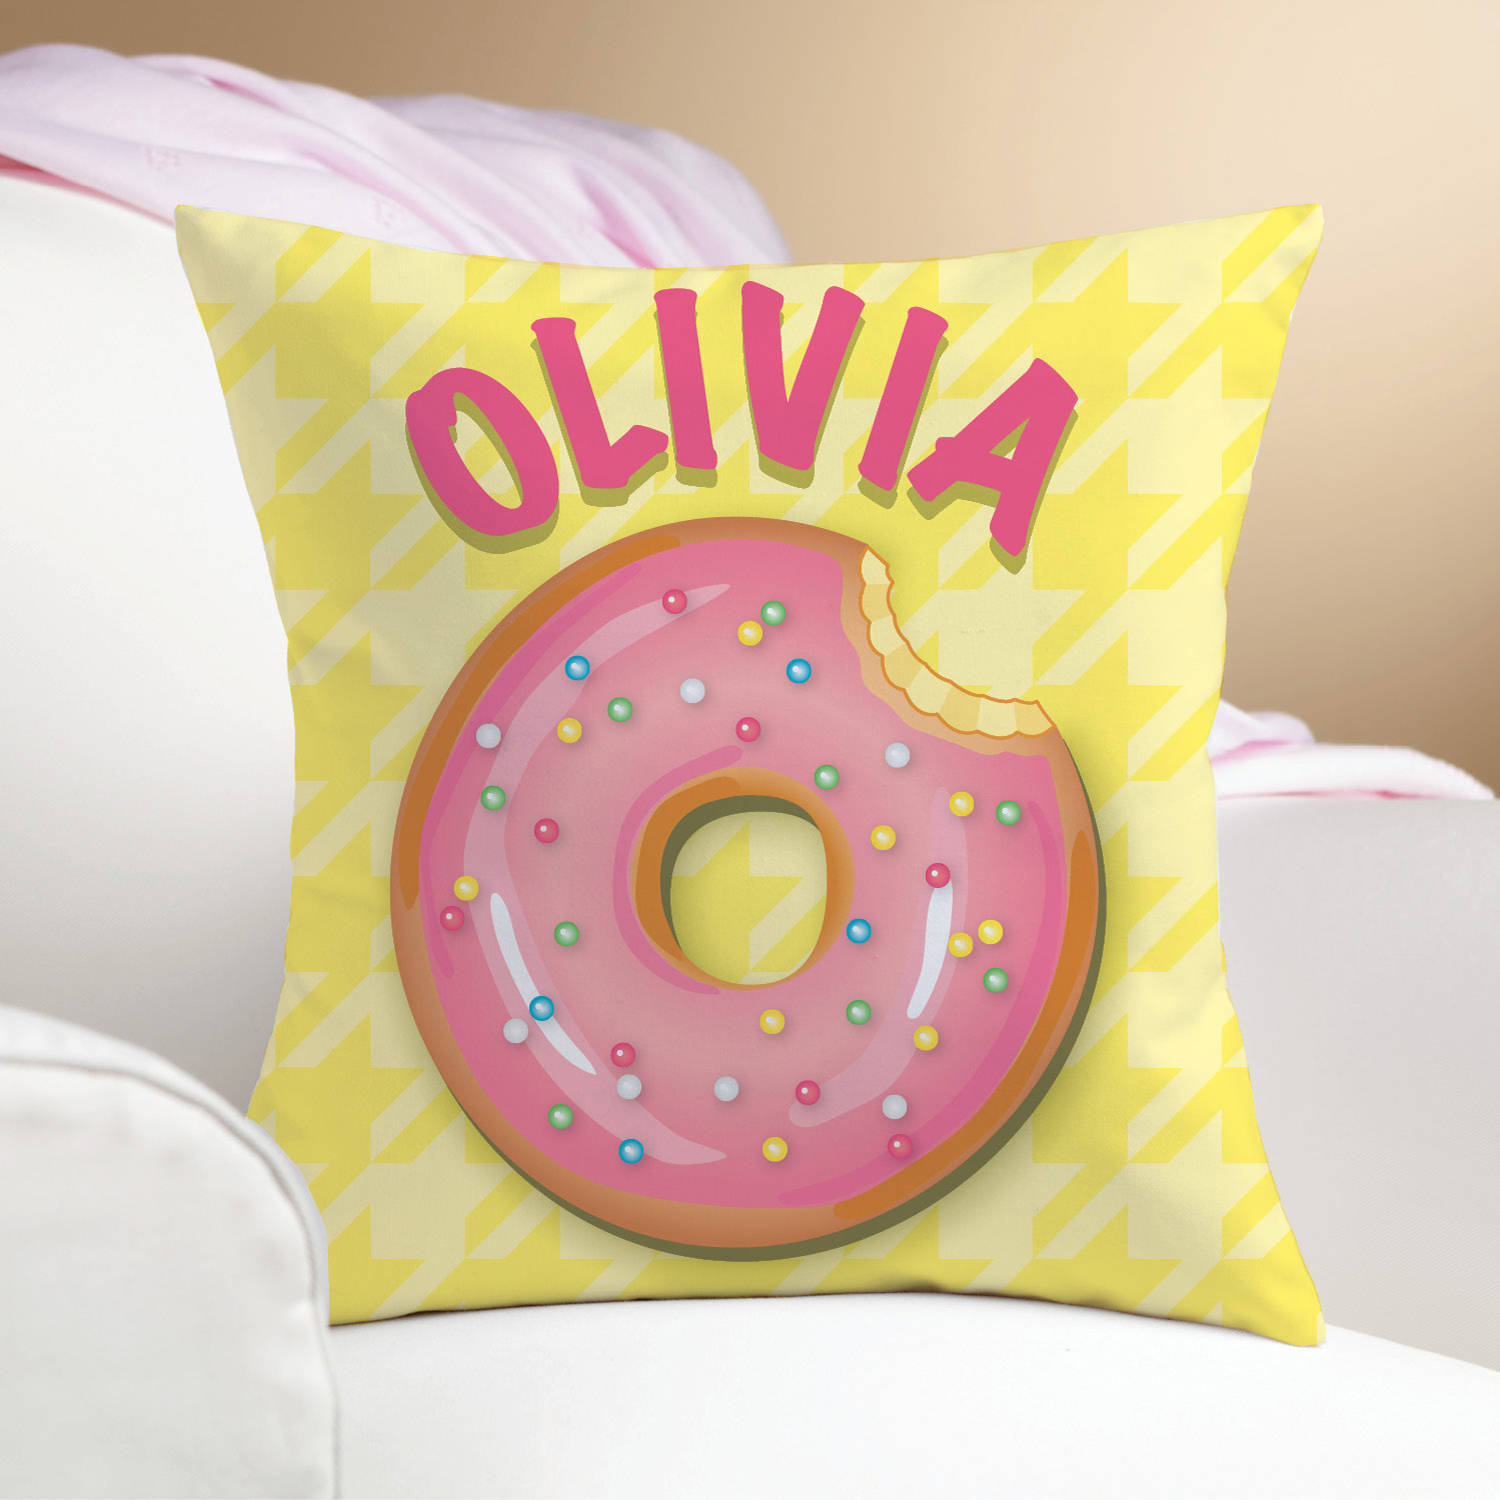 yummy donut personalize pillow